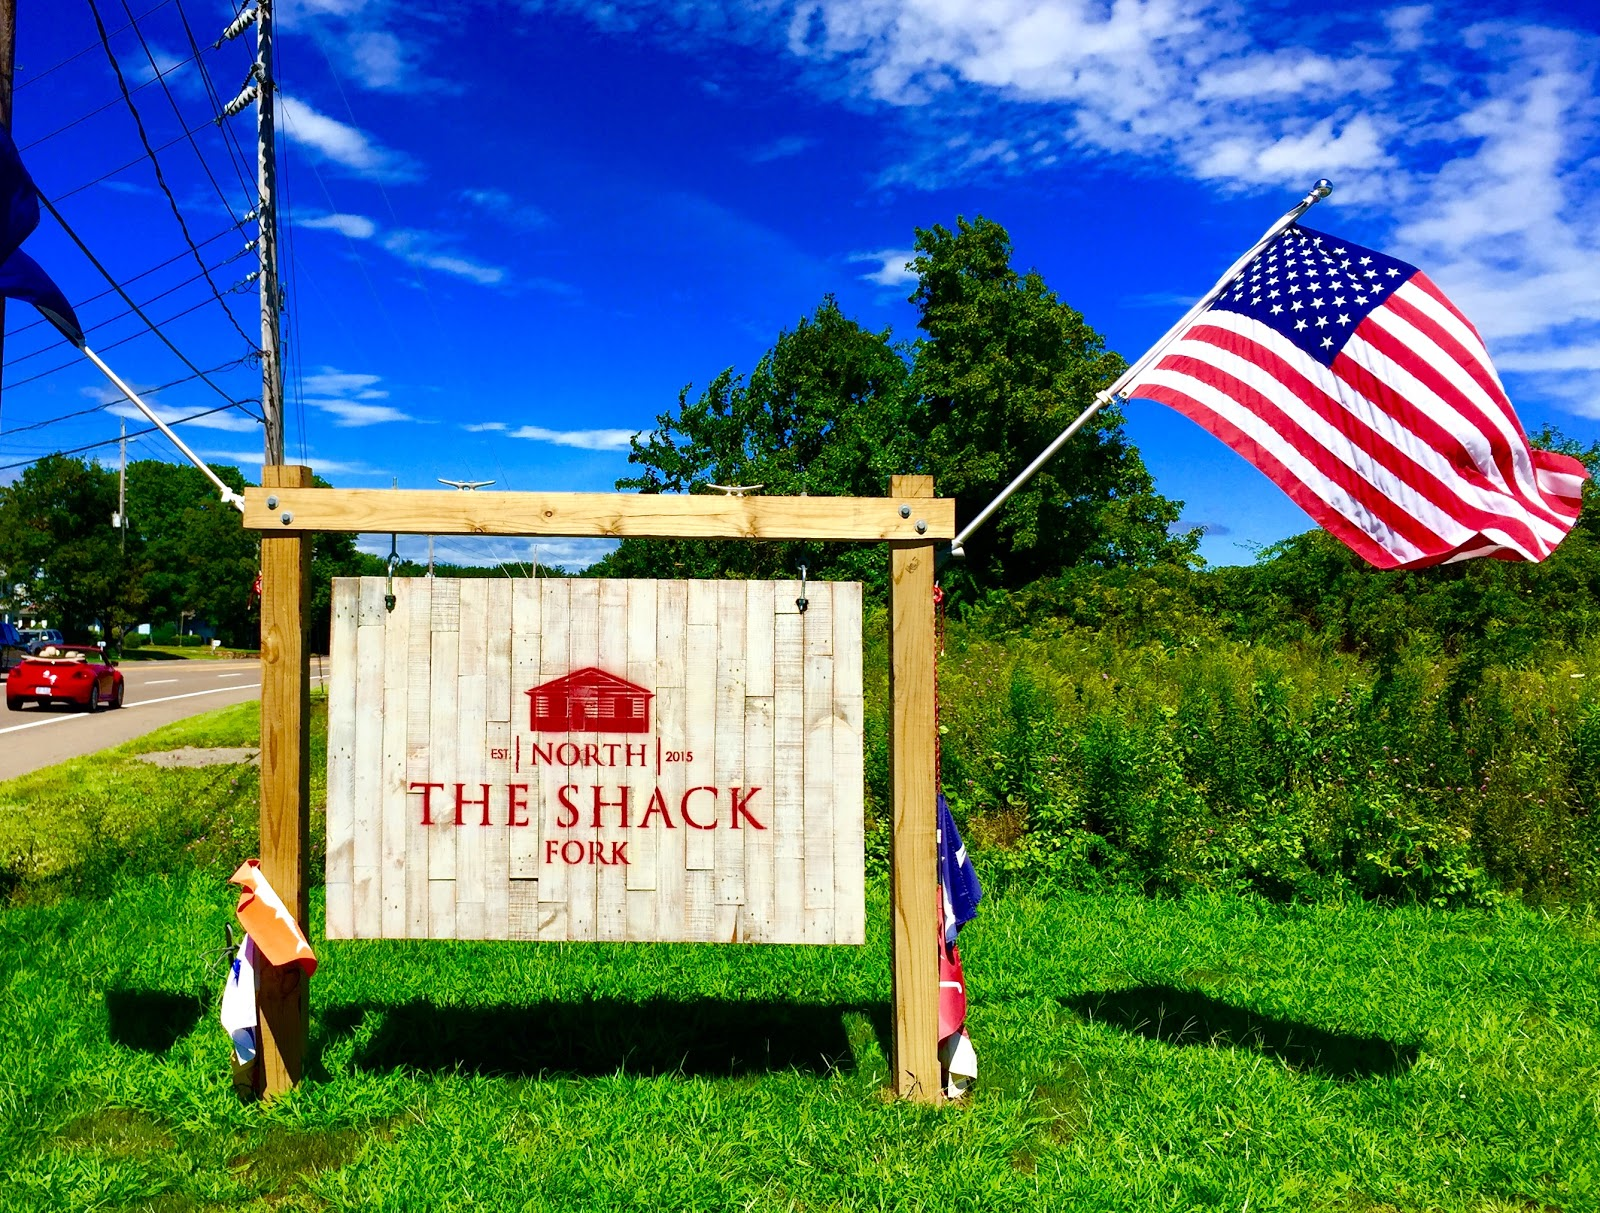 Phoodographs and Finds: A Truly Phab Burger & Shallot-Dusted Fries at The North Fork Shack in Southold, L.I. N,Y., USA